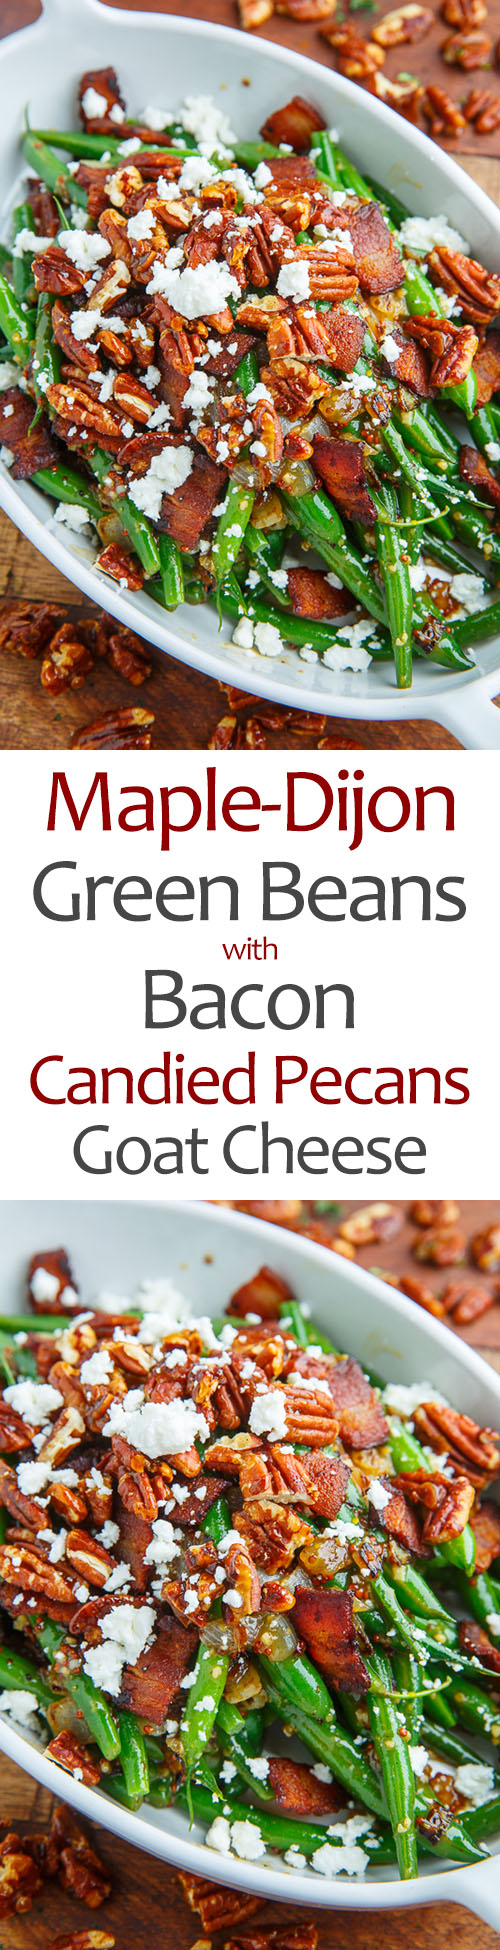 Maple Dijon Green Beans with Bacon, Candied Pecans and Goat Cheese